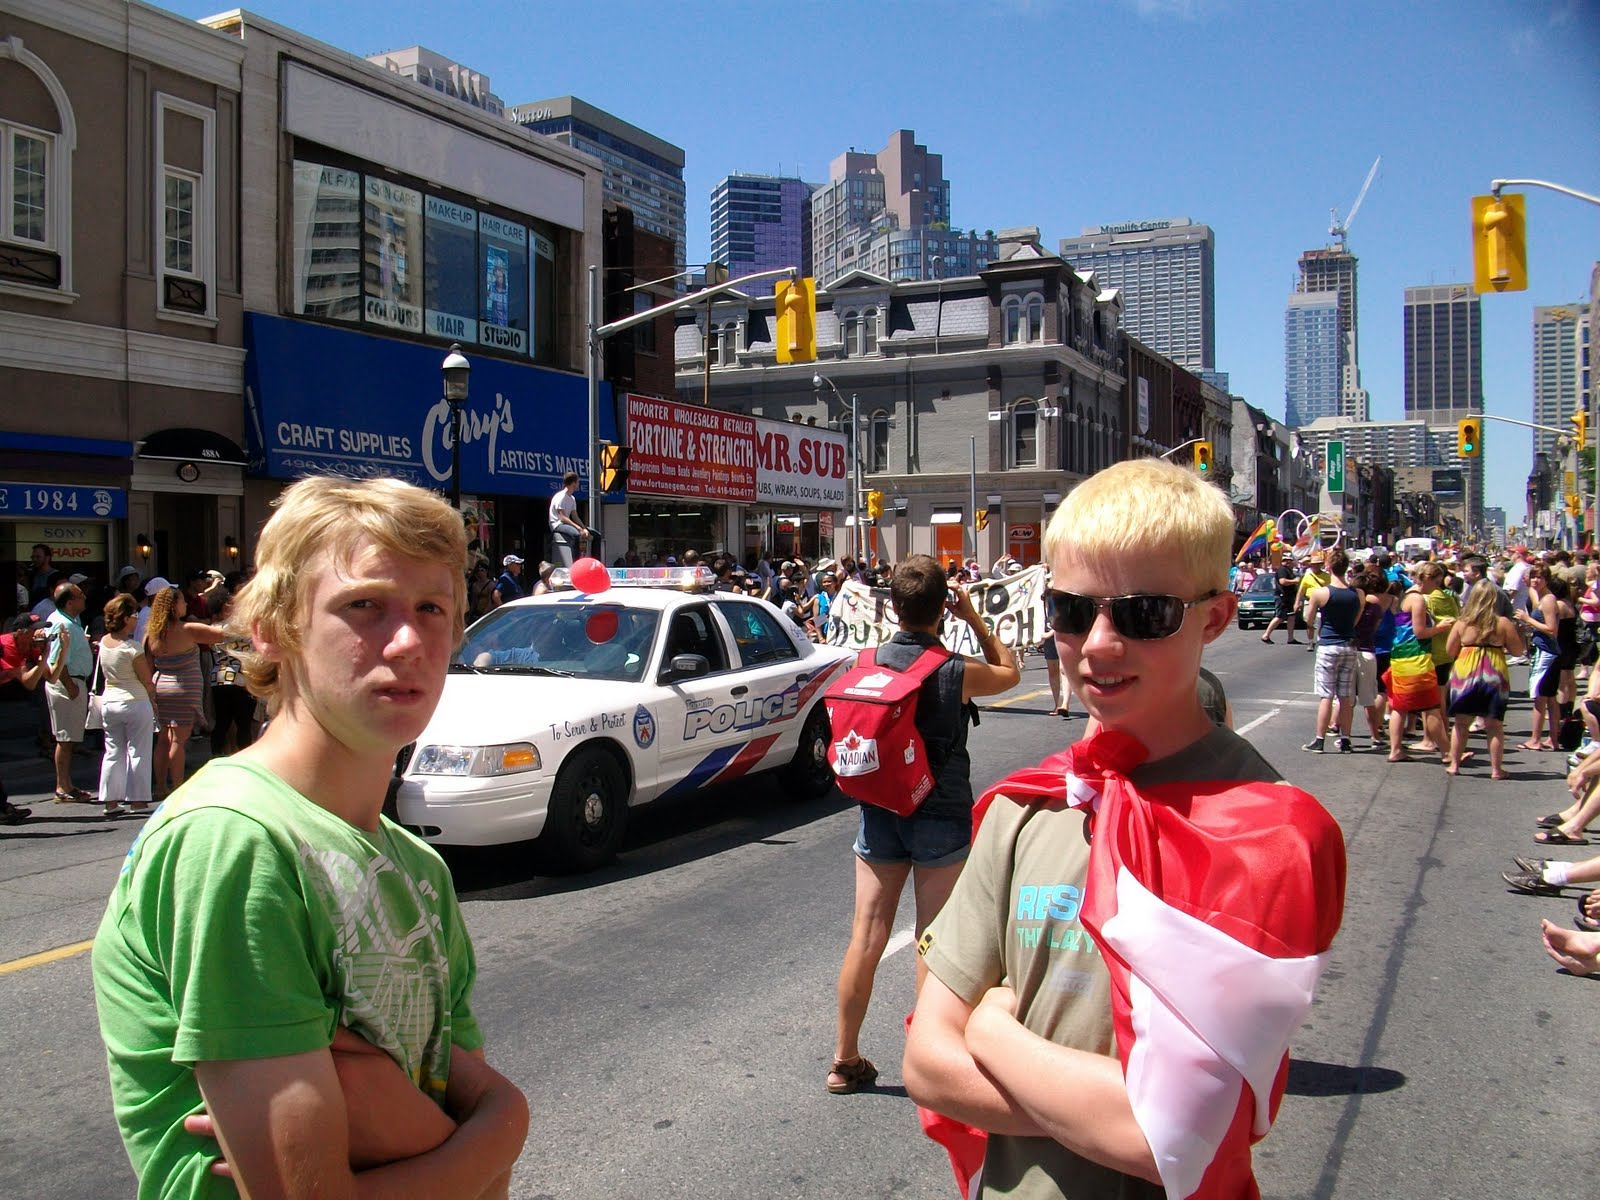 Toronto Gay Pride 2008 - YouTube